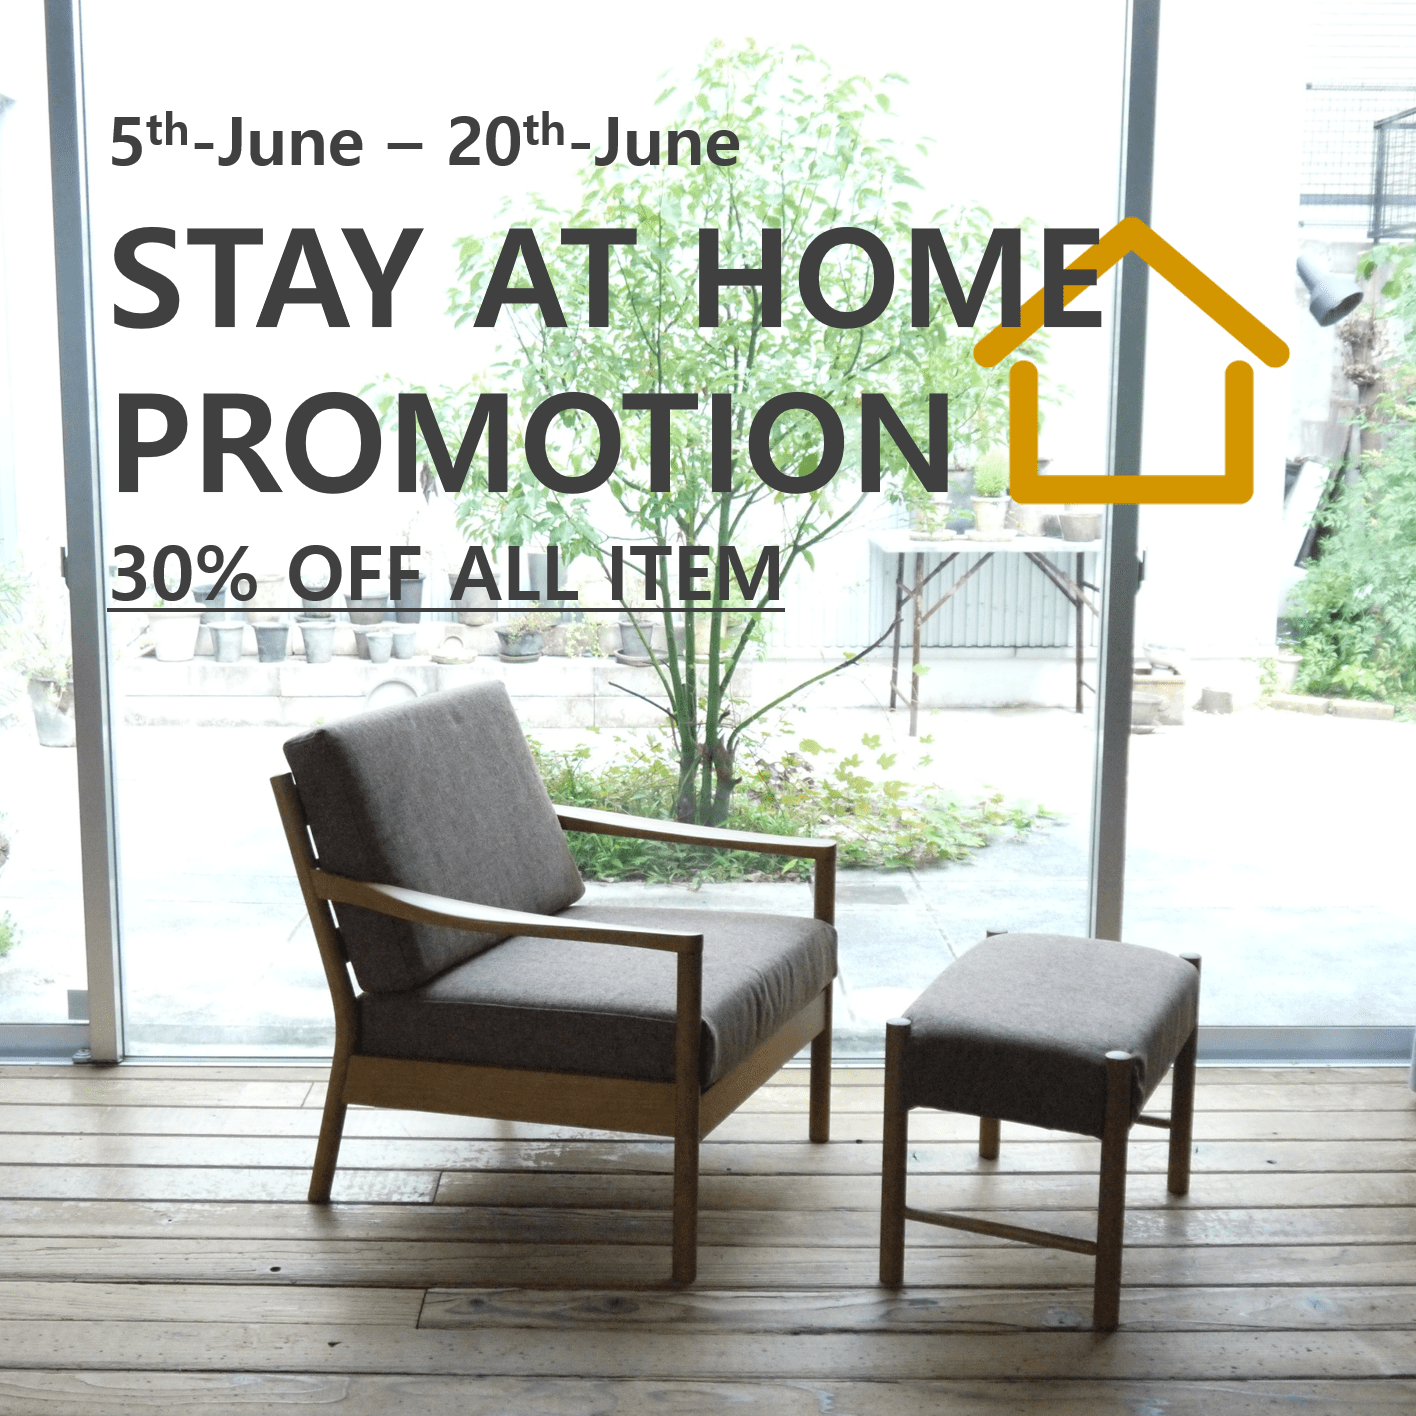 STAY AT HOPE PROMOTION